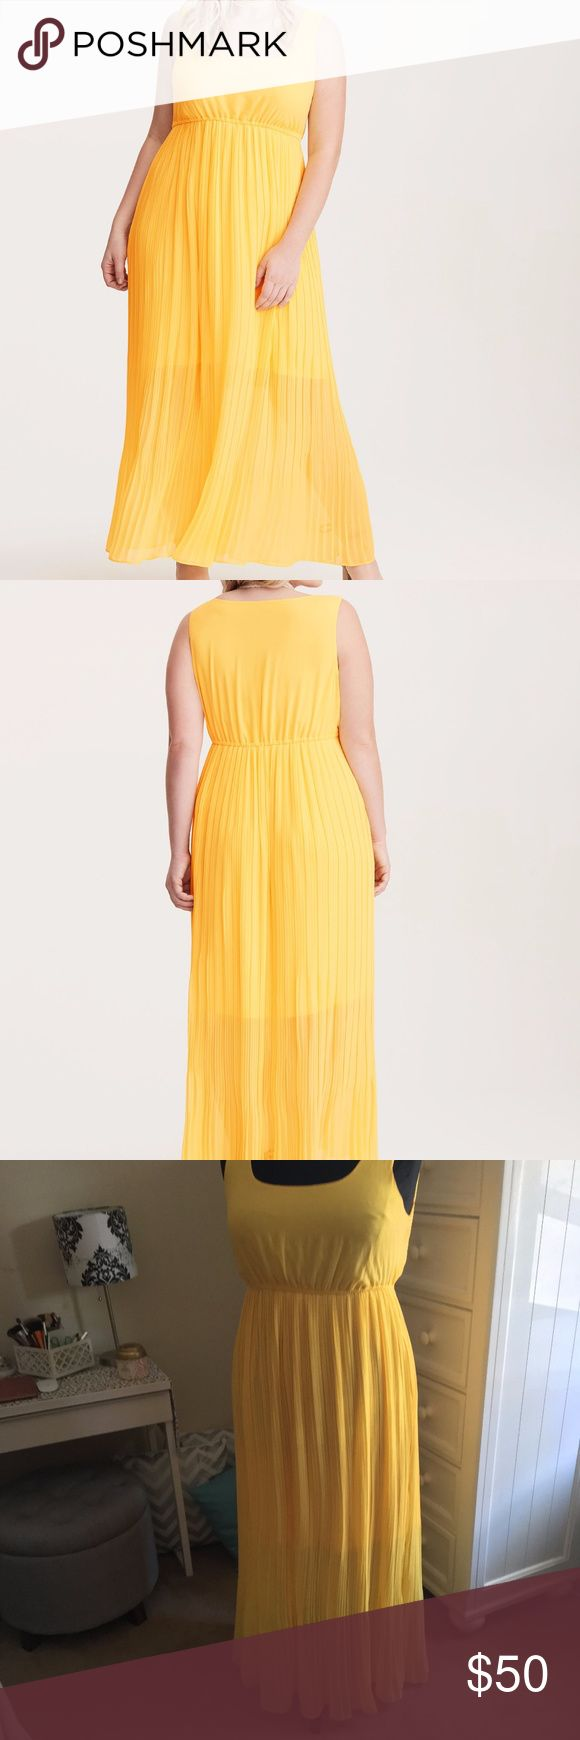 "Torrid Yellow Pleated Chiffon Maxi Dress Plus 1X New without tags Torrid Pleated Chiffon Maxi Dress in yellow, size 1X.  This sold out quickly!  Beautiful dress, just never wore it & it sat in my closet.  Sunshine yellow chiffon is the sucker punch of color your nightly routine needs, while the extreme pleated maxi skirt is suited for dancing and spinning the night away. A relaxed scoop bodice pares down the look (ever so slightly).  ~57 1/2"" from shoulder to hem  100% Polyester torrid…"